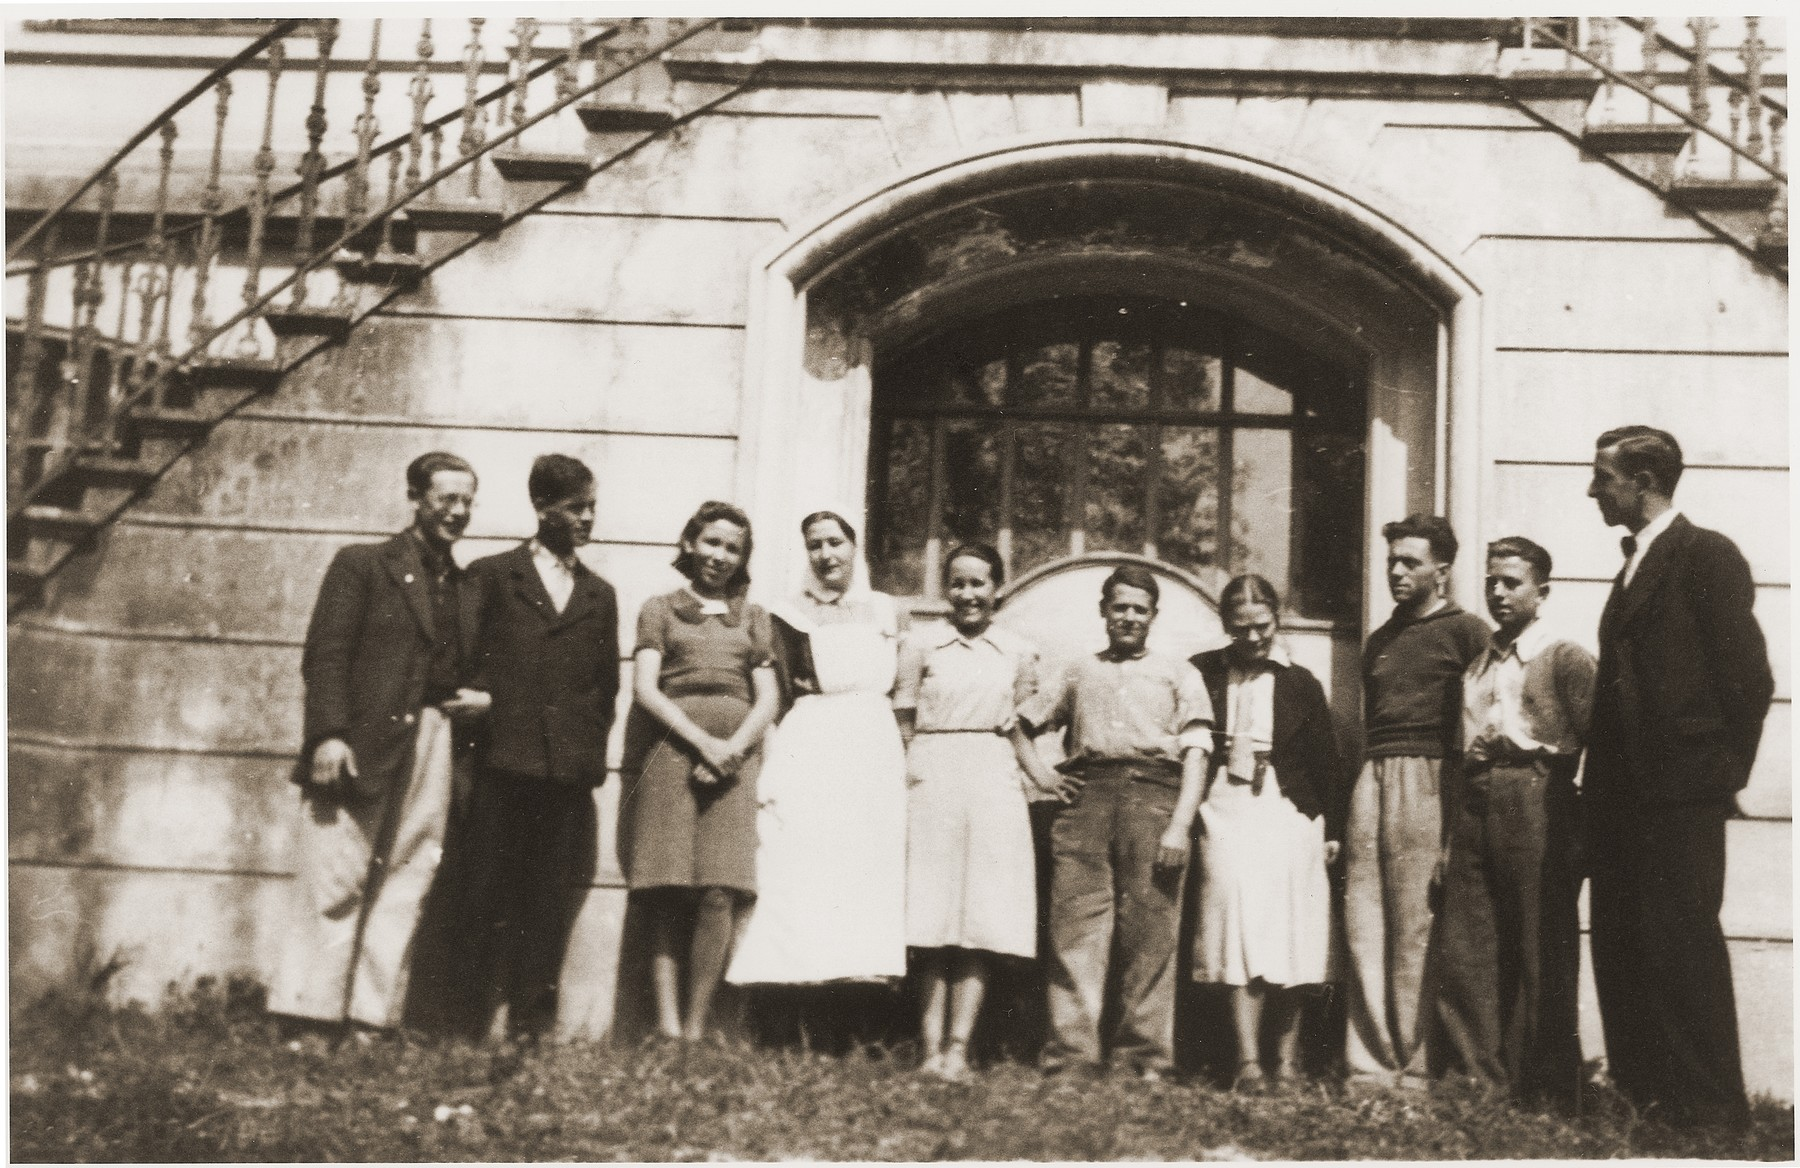 Group portrait of the staff of the Chateau de Montluel children's home near Lyon.  The staff of the home was composed both of Jewish refugees and Swiss aid workers.